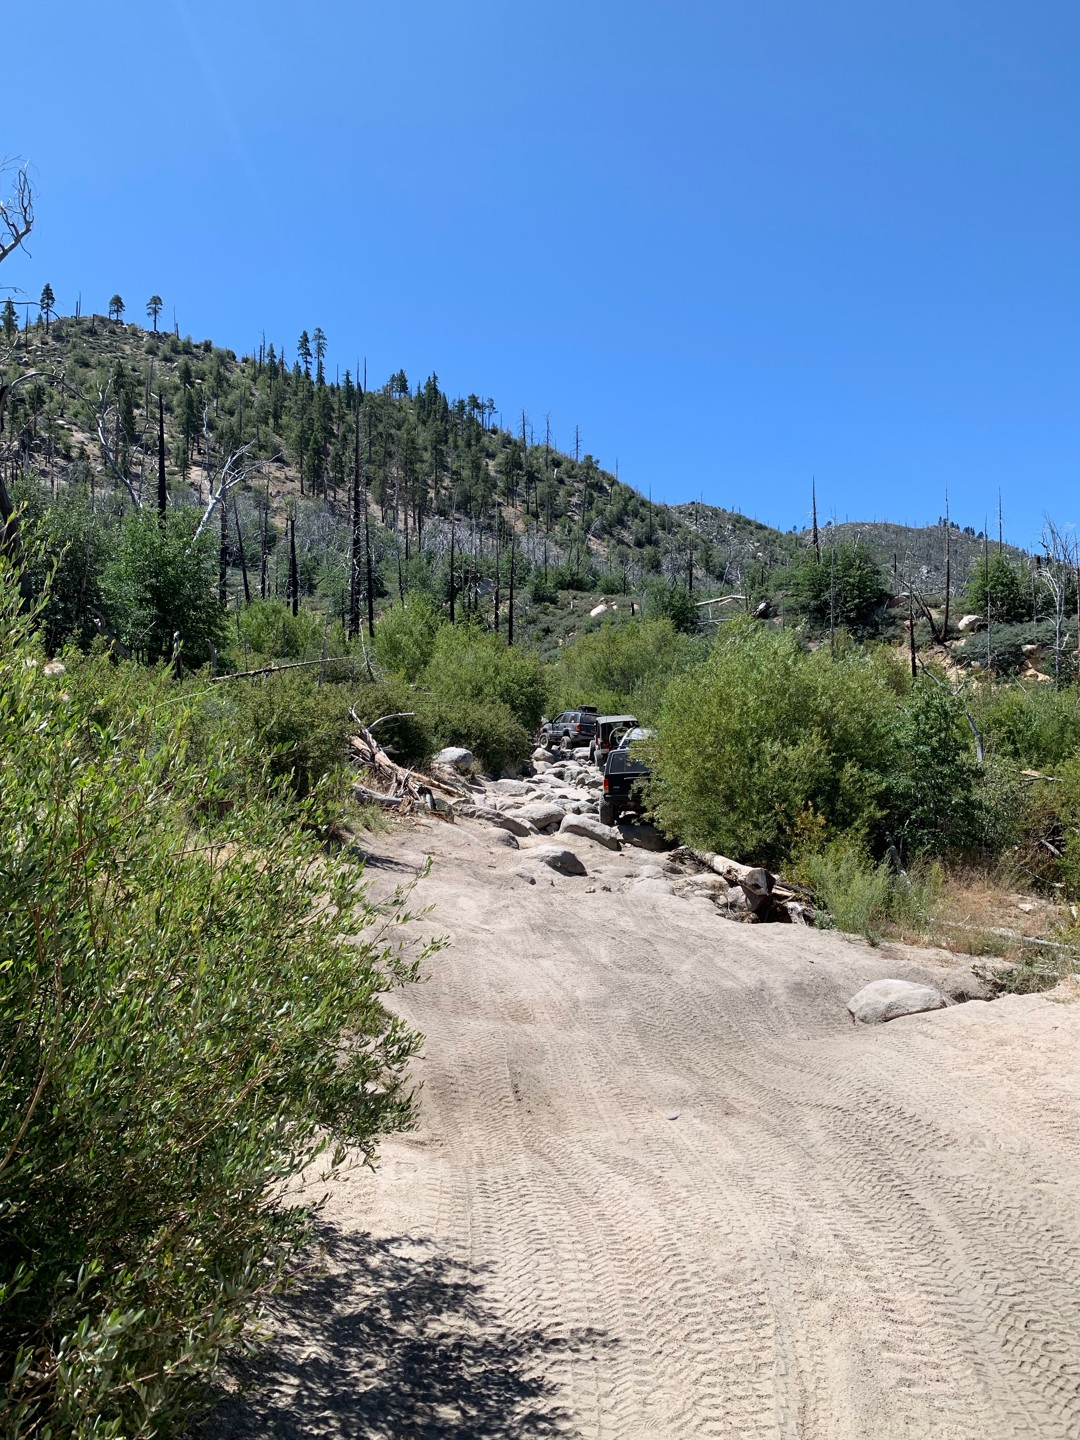 Trail Review: 3N93 - Holcomb Creek Trail